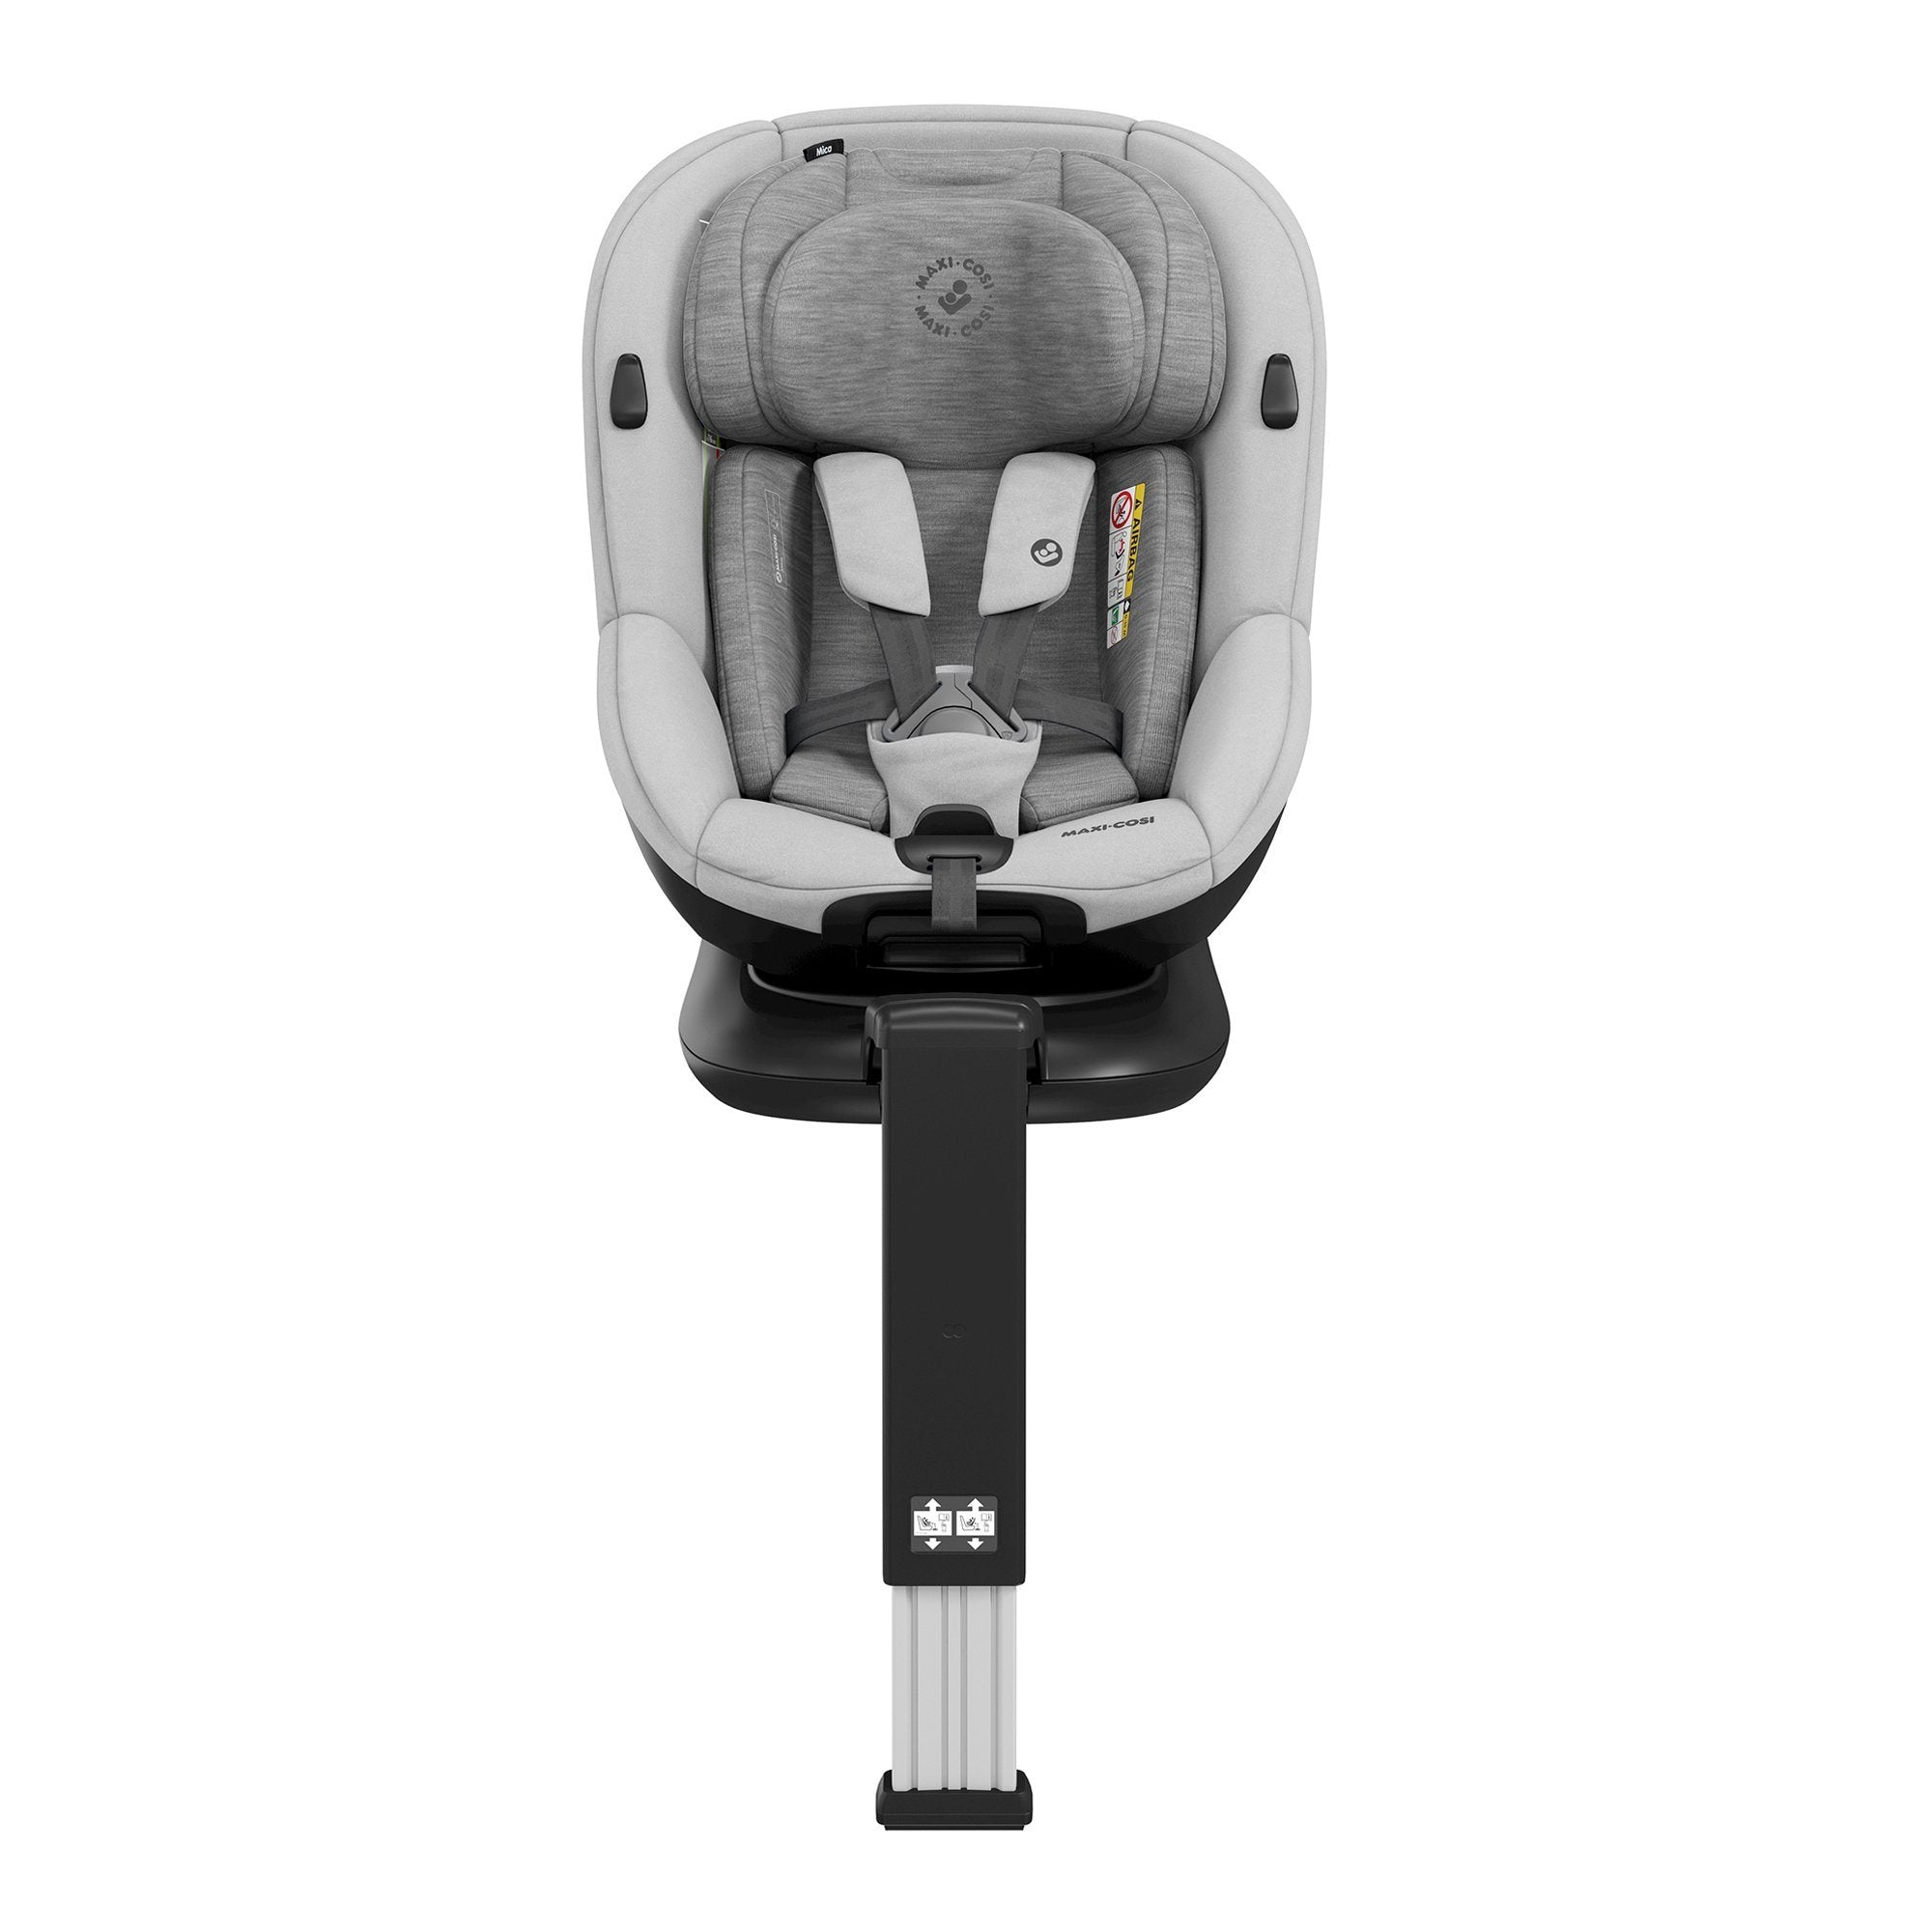 Maxi-Cosi Mica i-Size 0-4 years car seat - Authentic Grey - Pushchair Expert